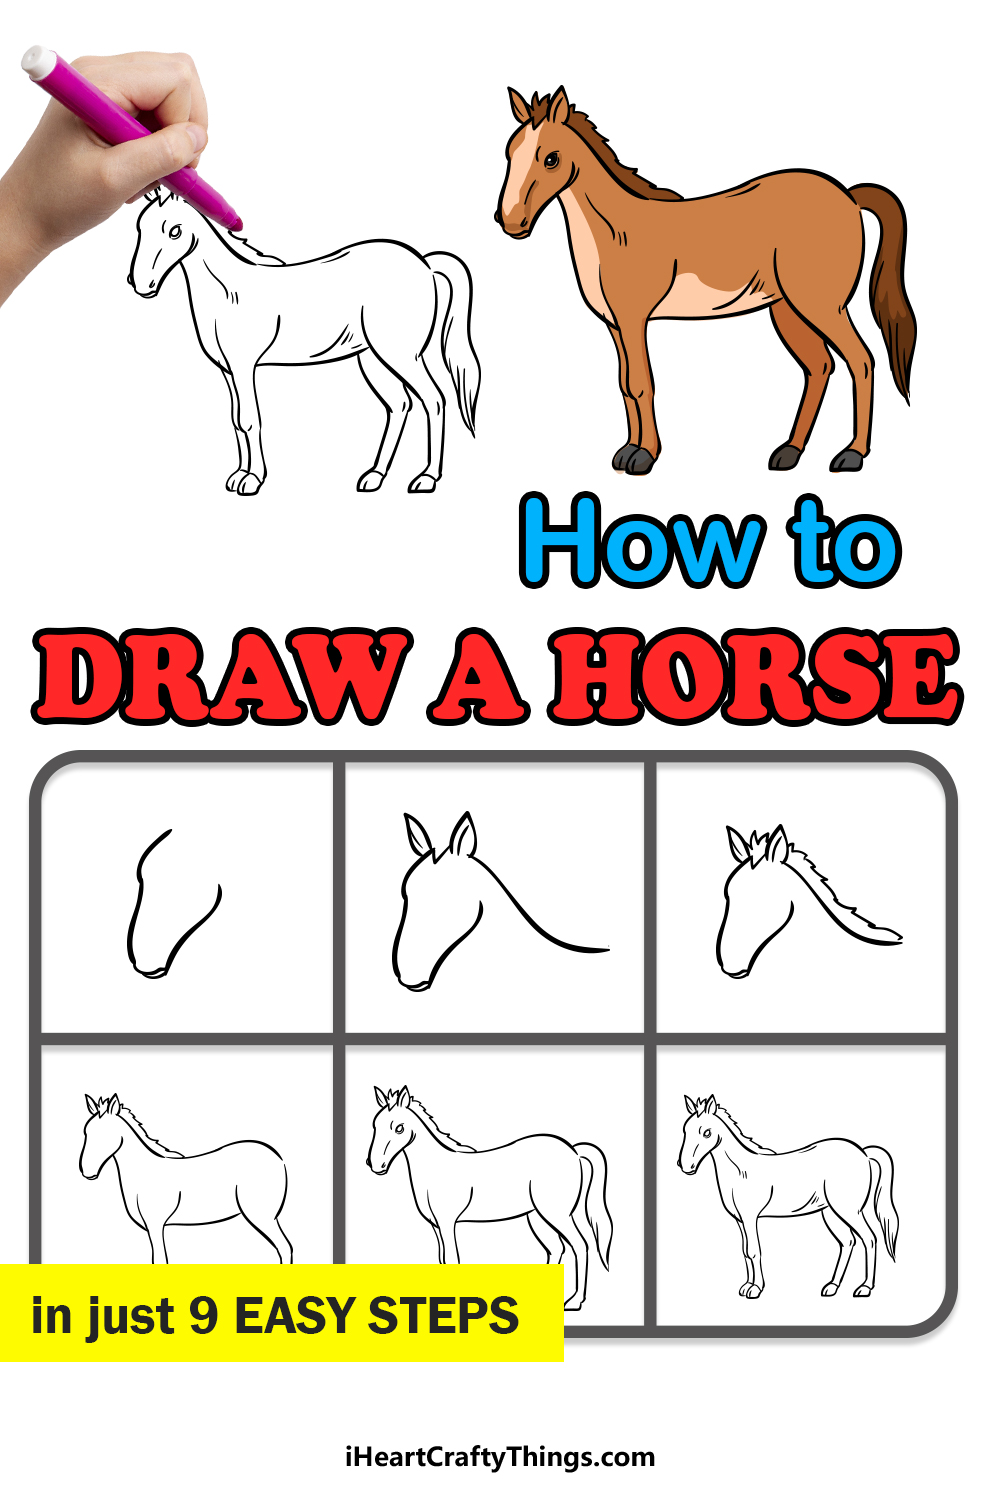 how to draw a horse in 9 easy steps